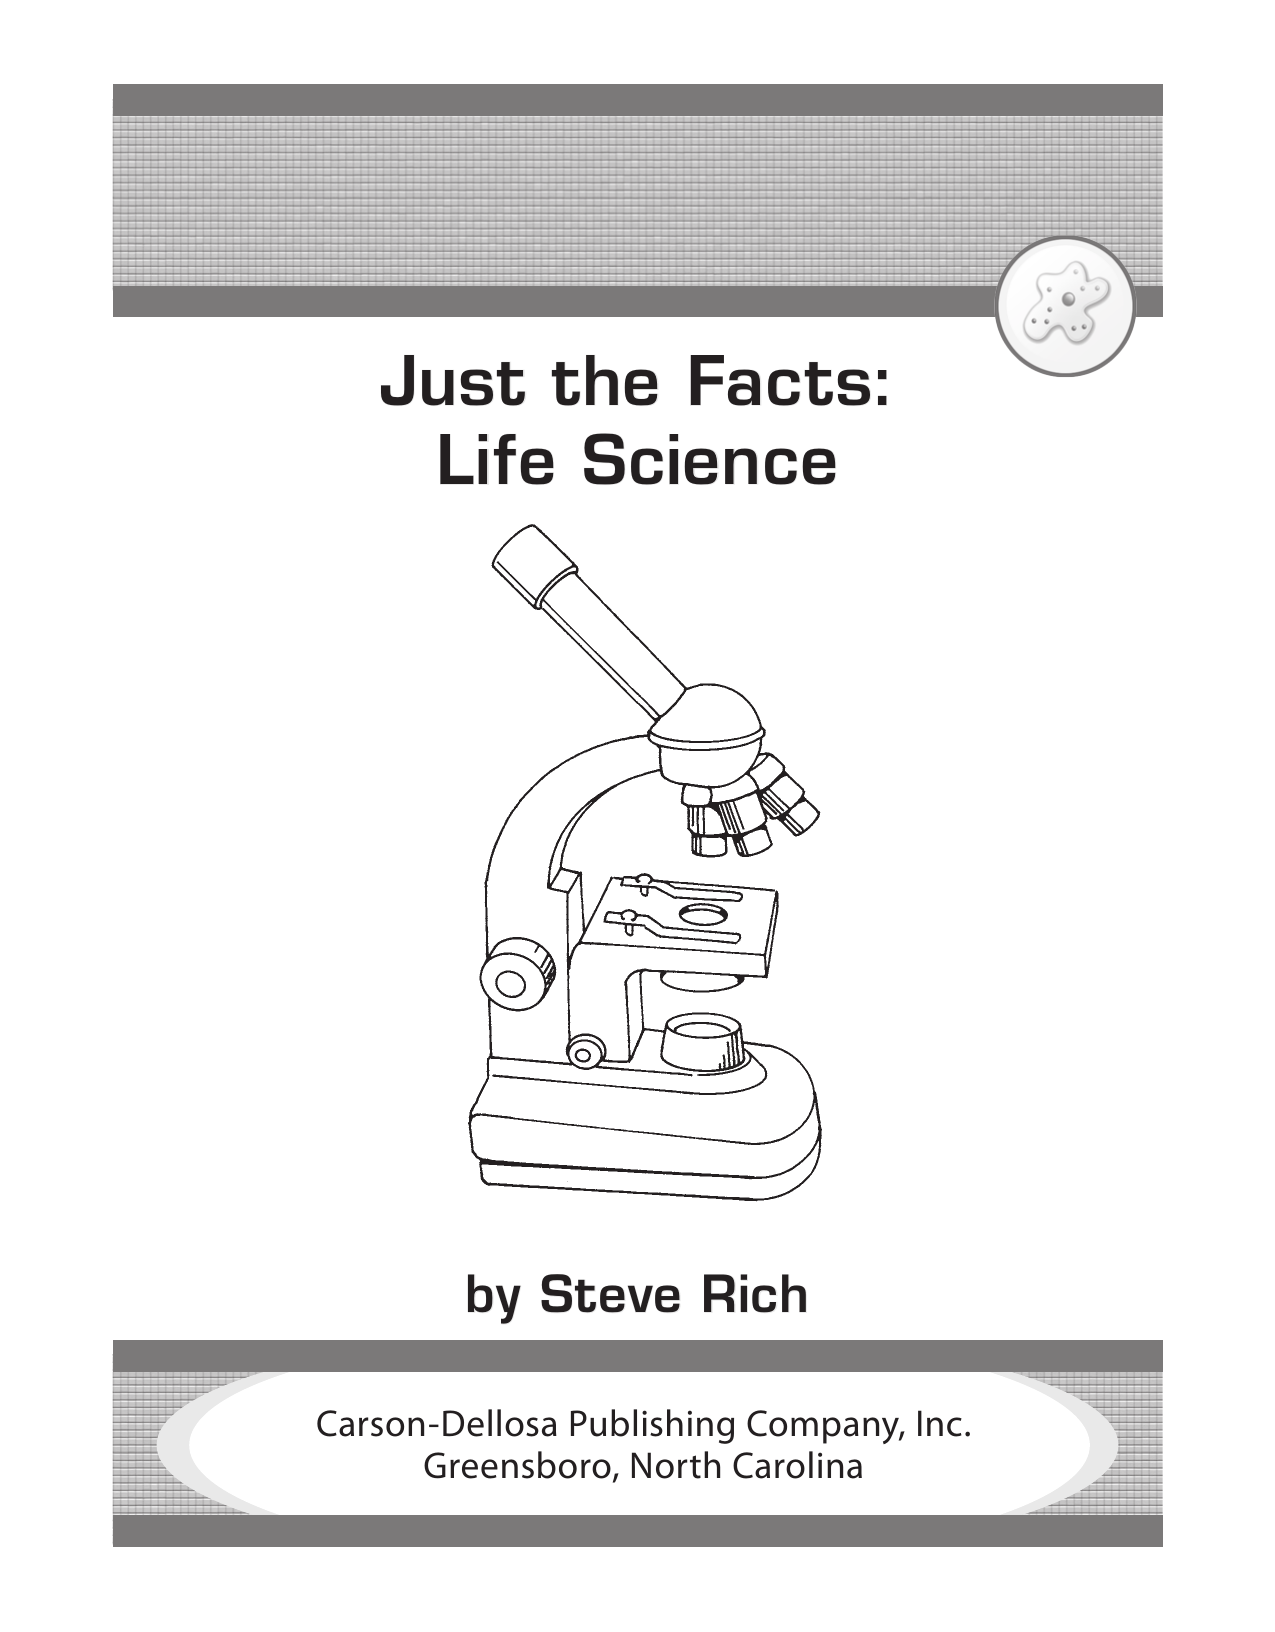 Just the Facts Life Science